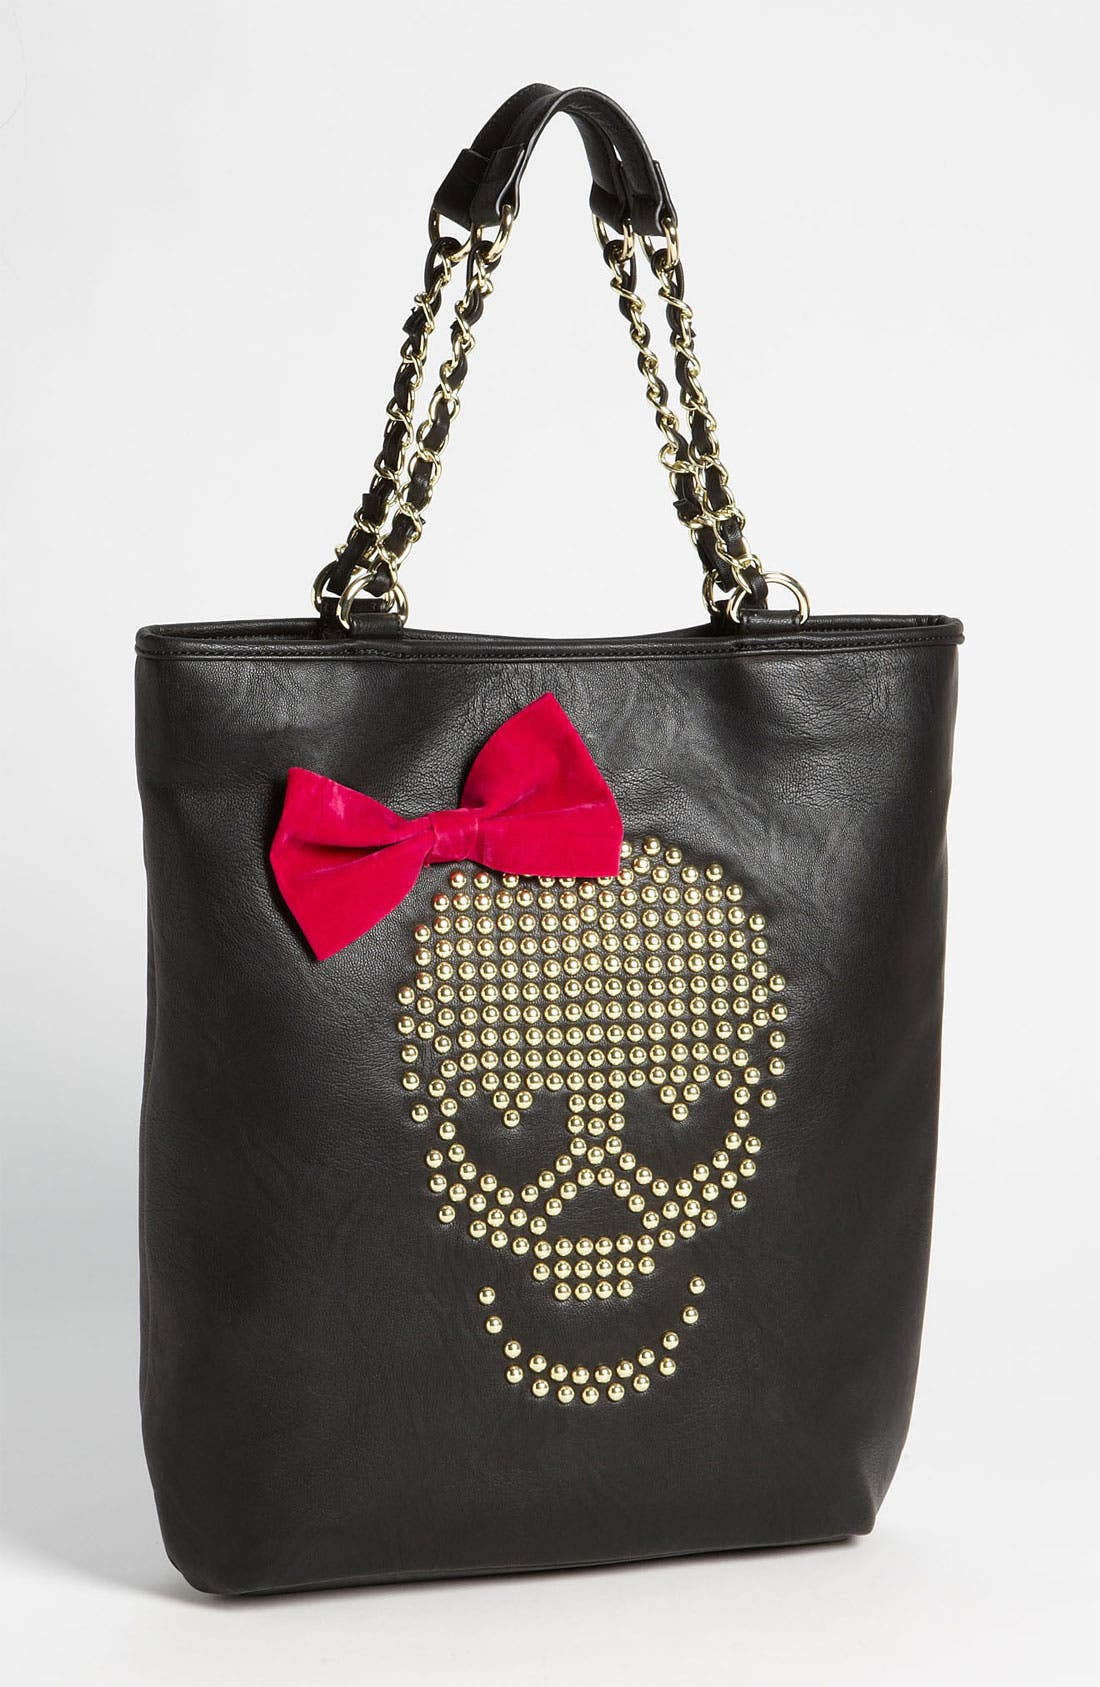 Alternate Image 1 Selected - Betsey Johnson 'Skull Stud' Tote